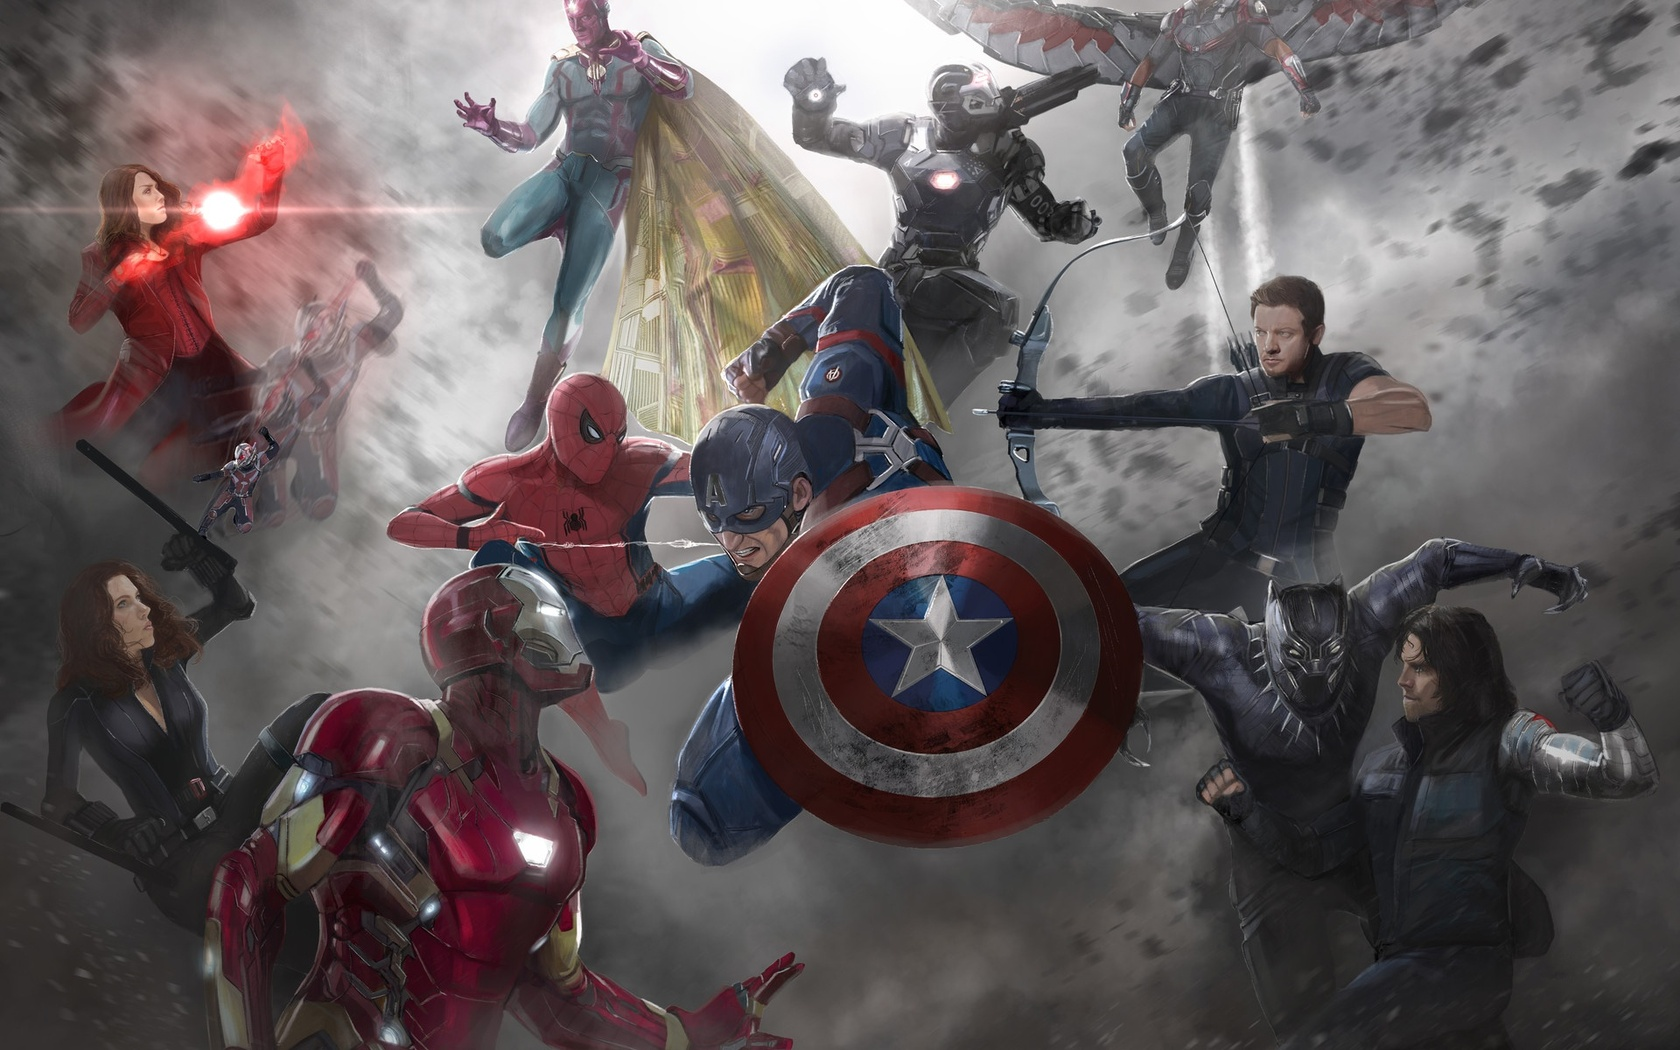 captain-america-civil-war-movie-artwork-r1.jpg